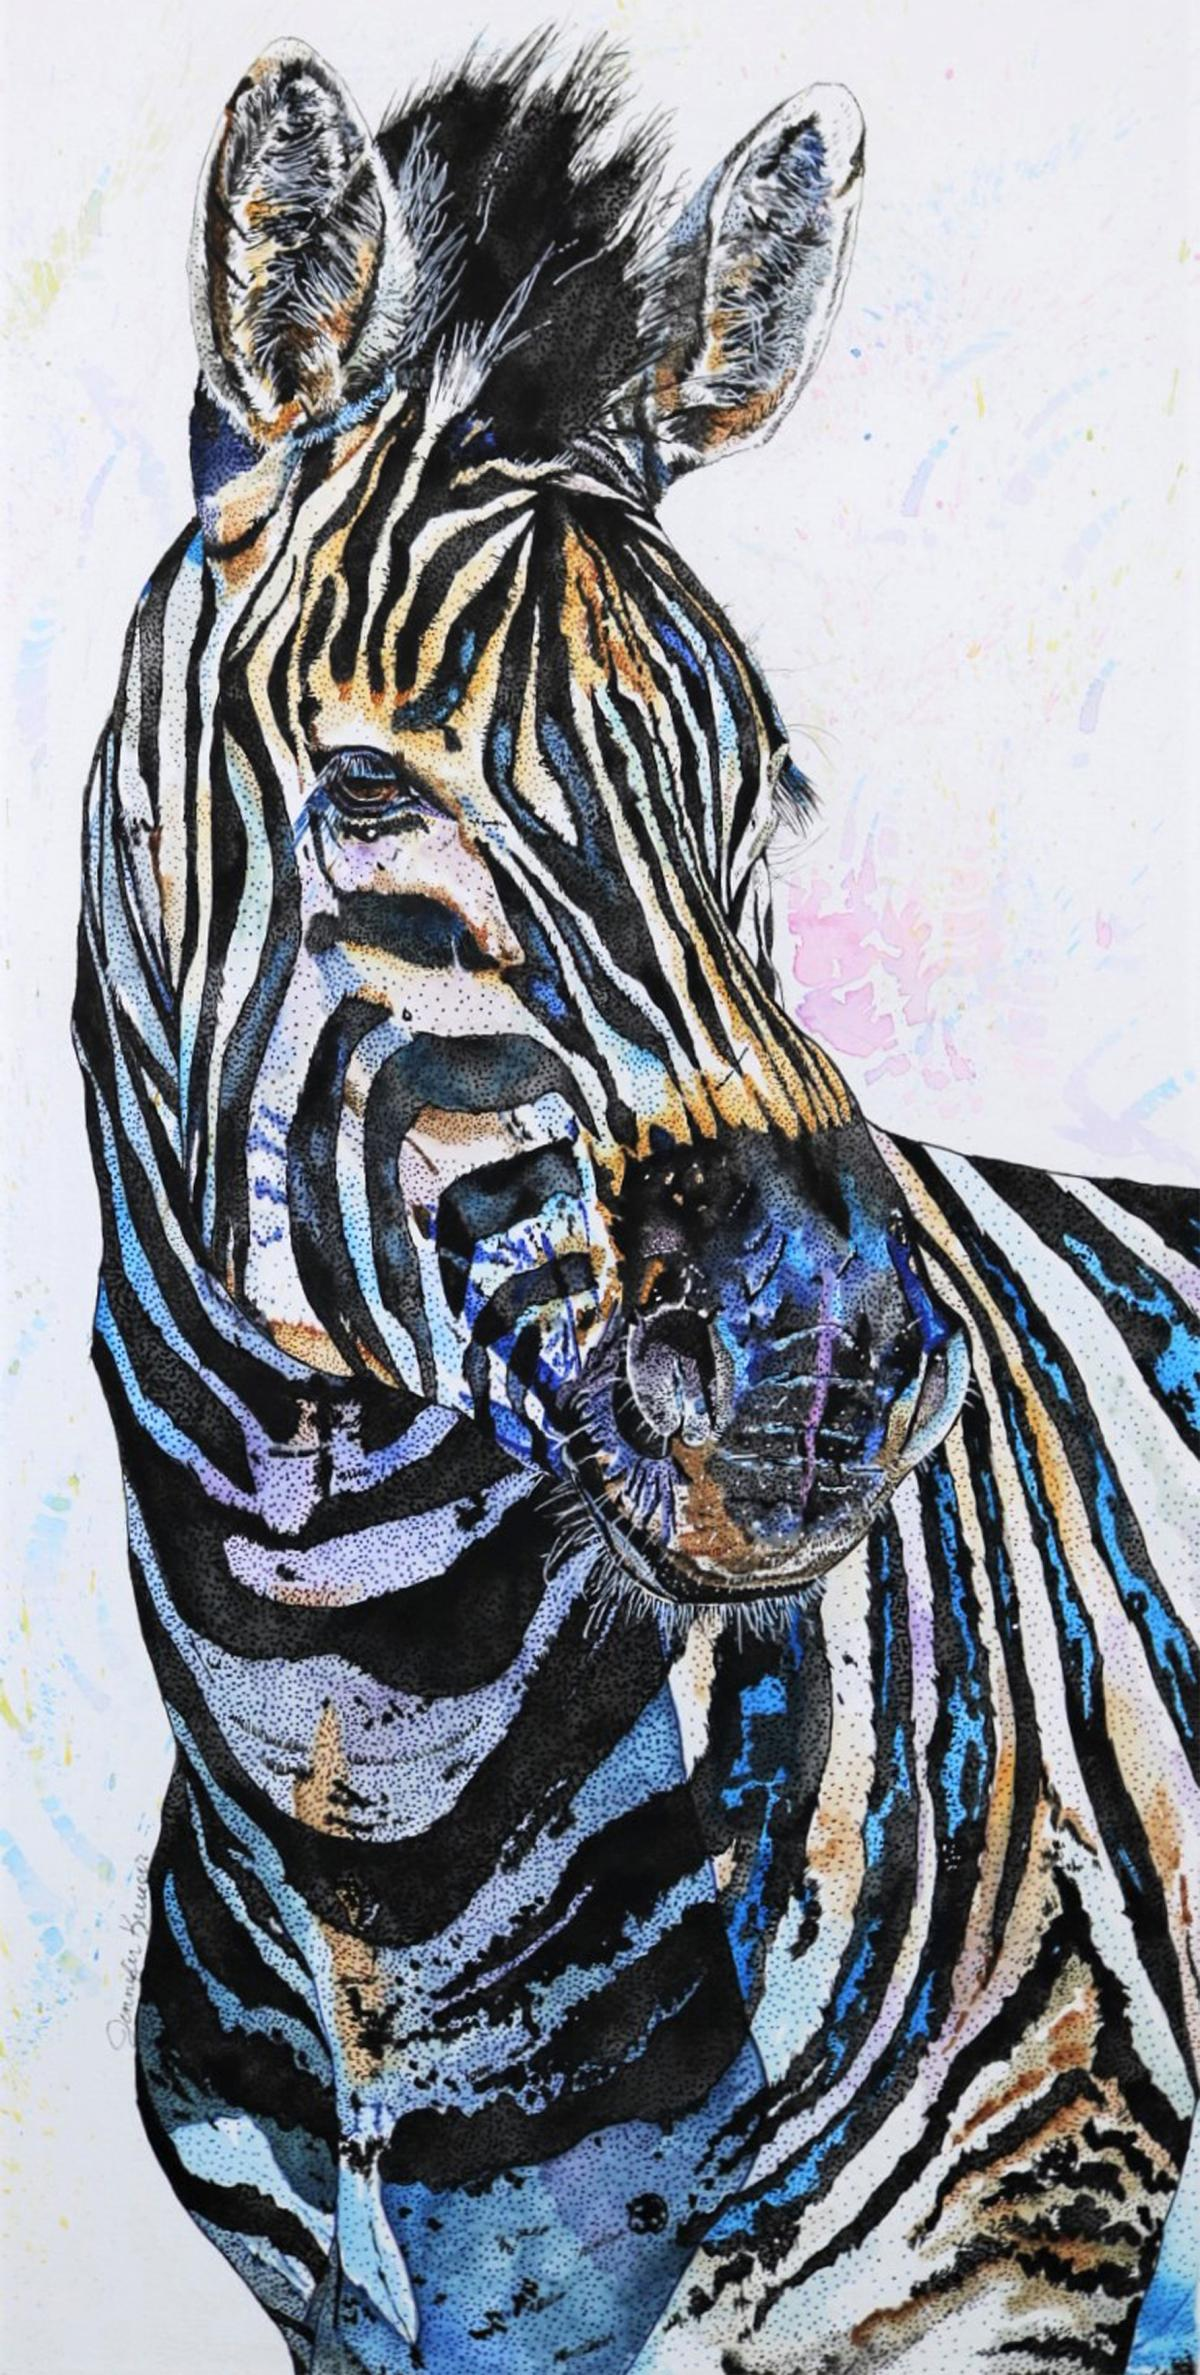 Not So Black and White   Wallhanging by Jennifer Krueger   Artists for Conservation 2021